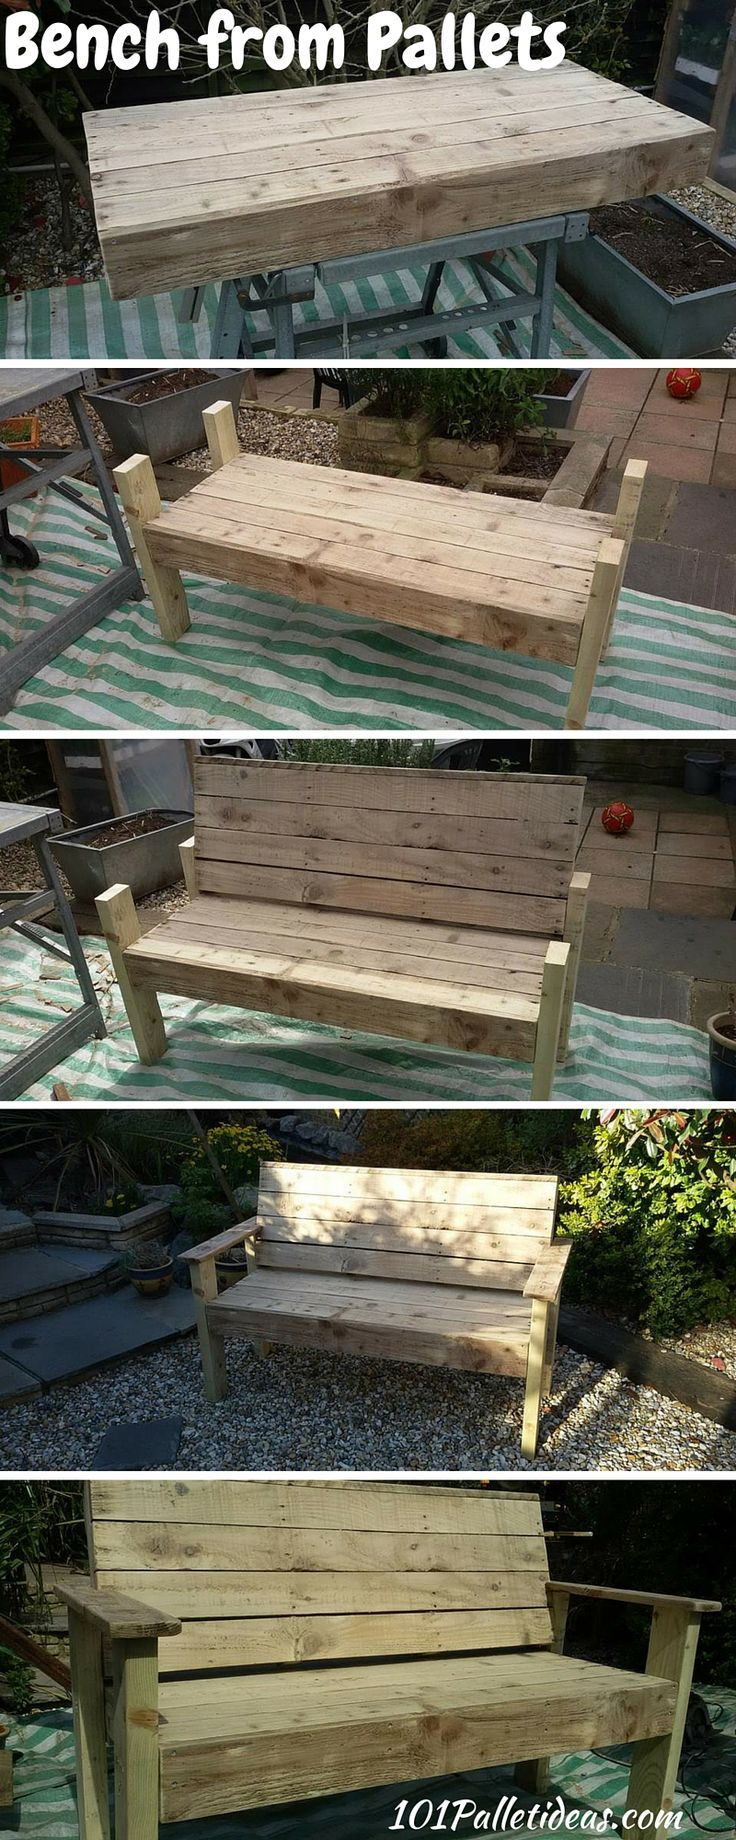 30 Best Patio Furniture Images On Pinterest | Woodwork, Pallets And Wood Part 84